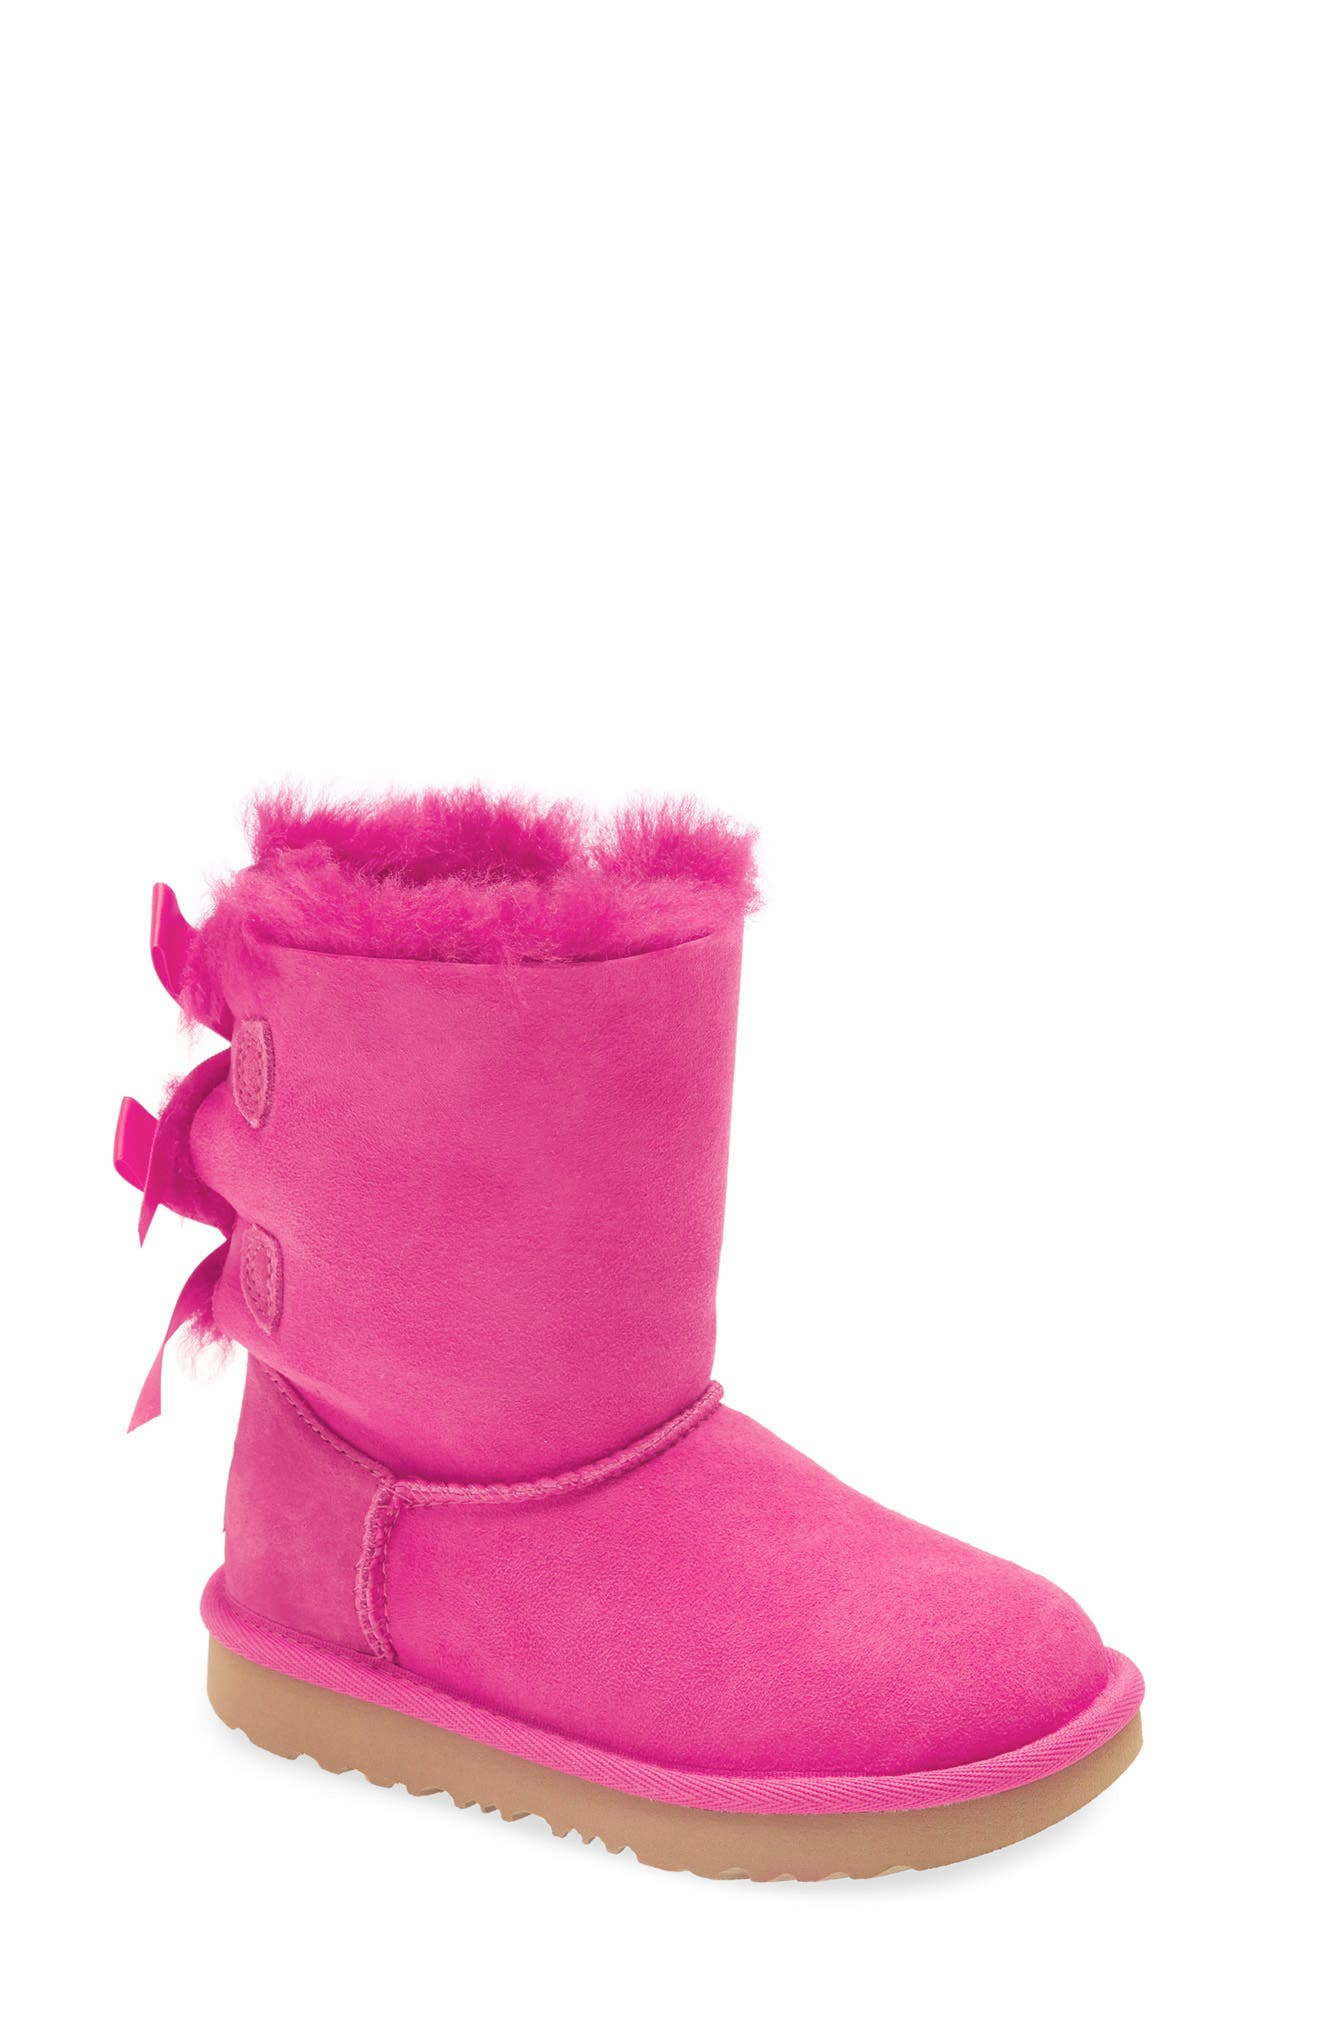 Blue Berry Toddler Winter Faux Fur Boots